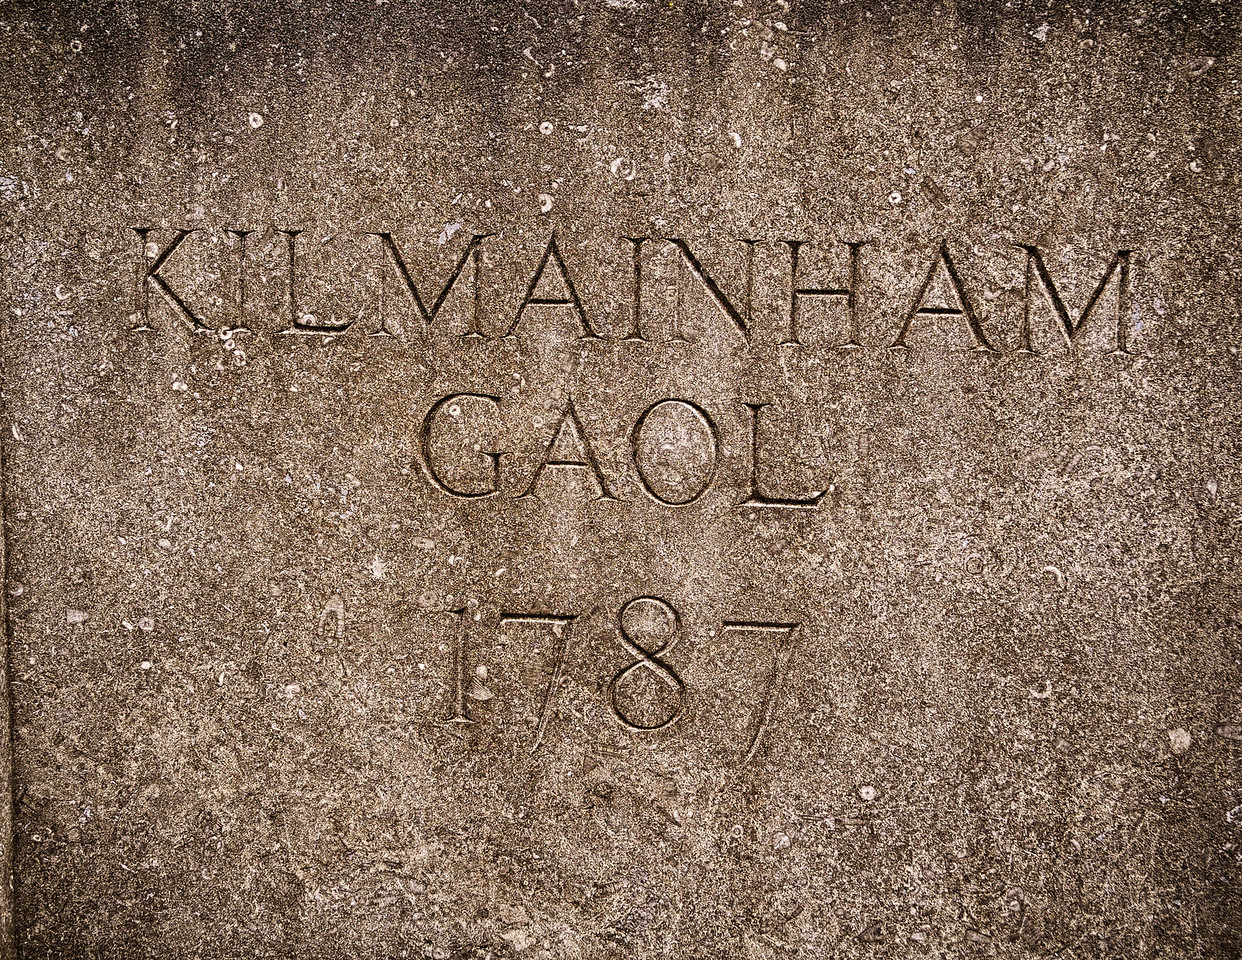 Kilmainham Gaol in Dublin; the site of incarcerations, executions, and many of the most brutal moments in the history of Ireland.